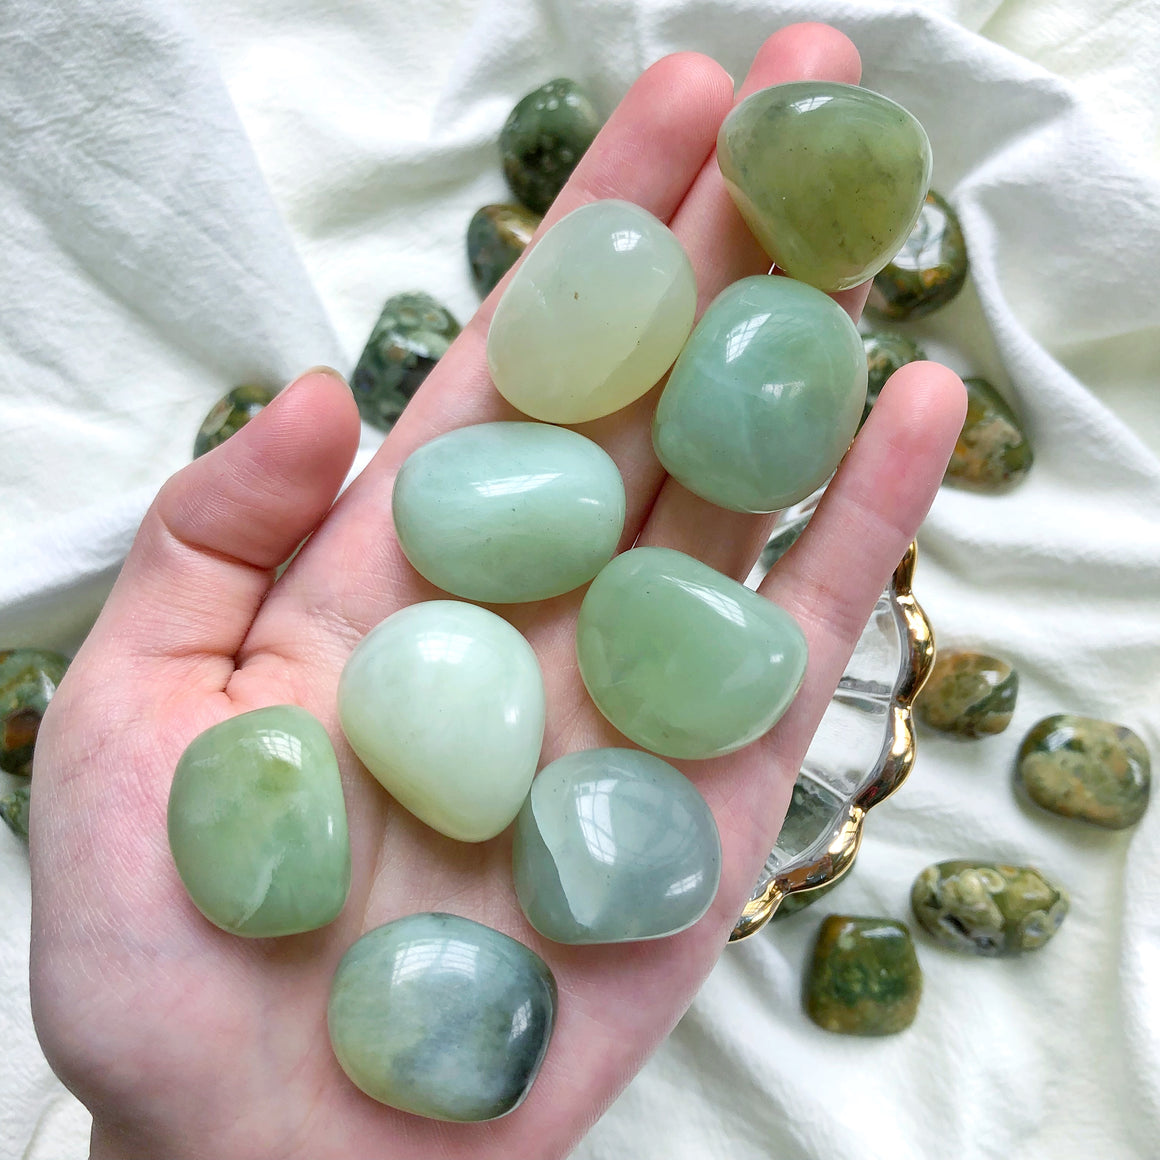 New Jade (Serpentine) Tumbled Stones